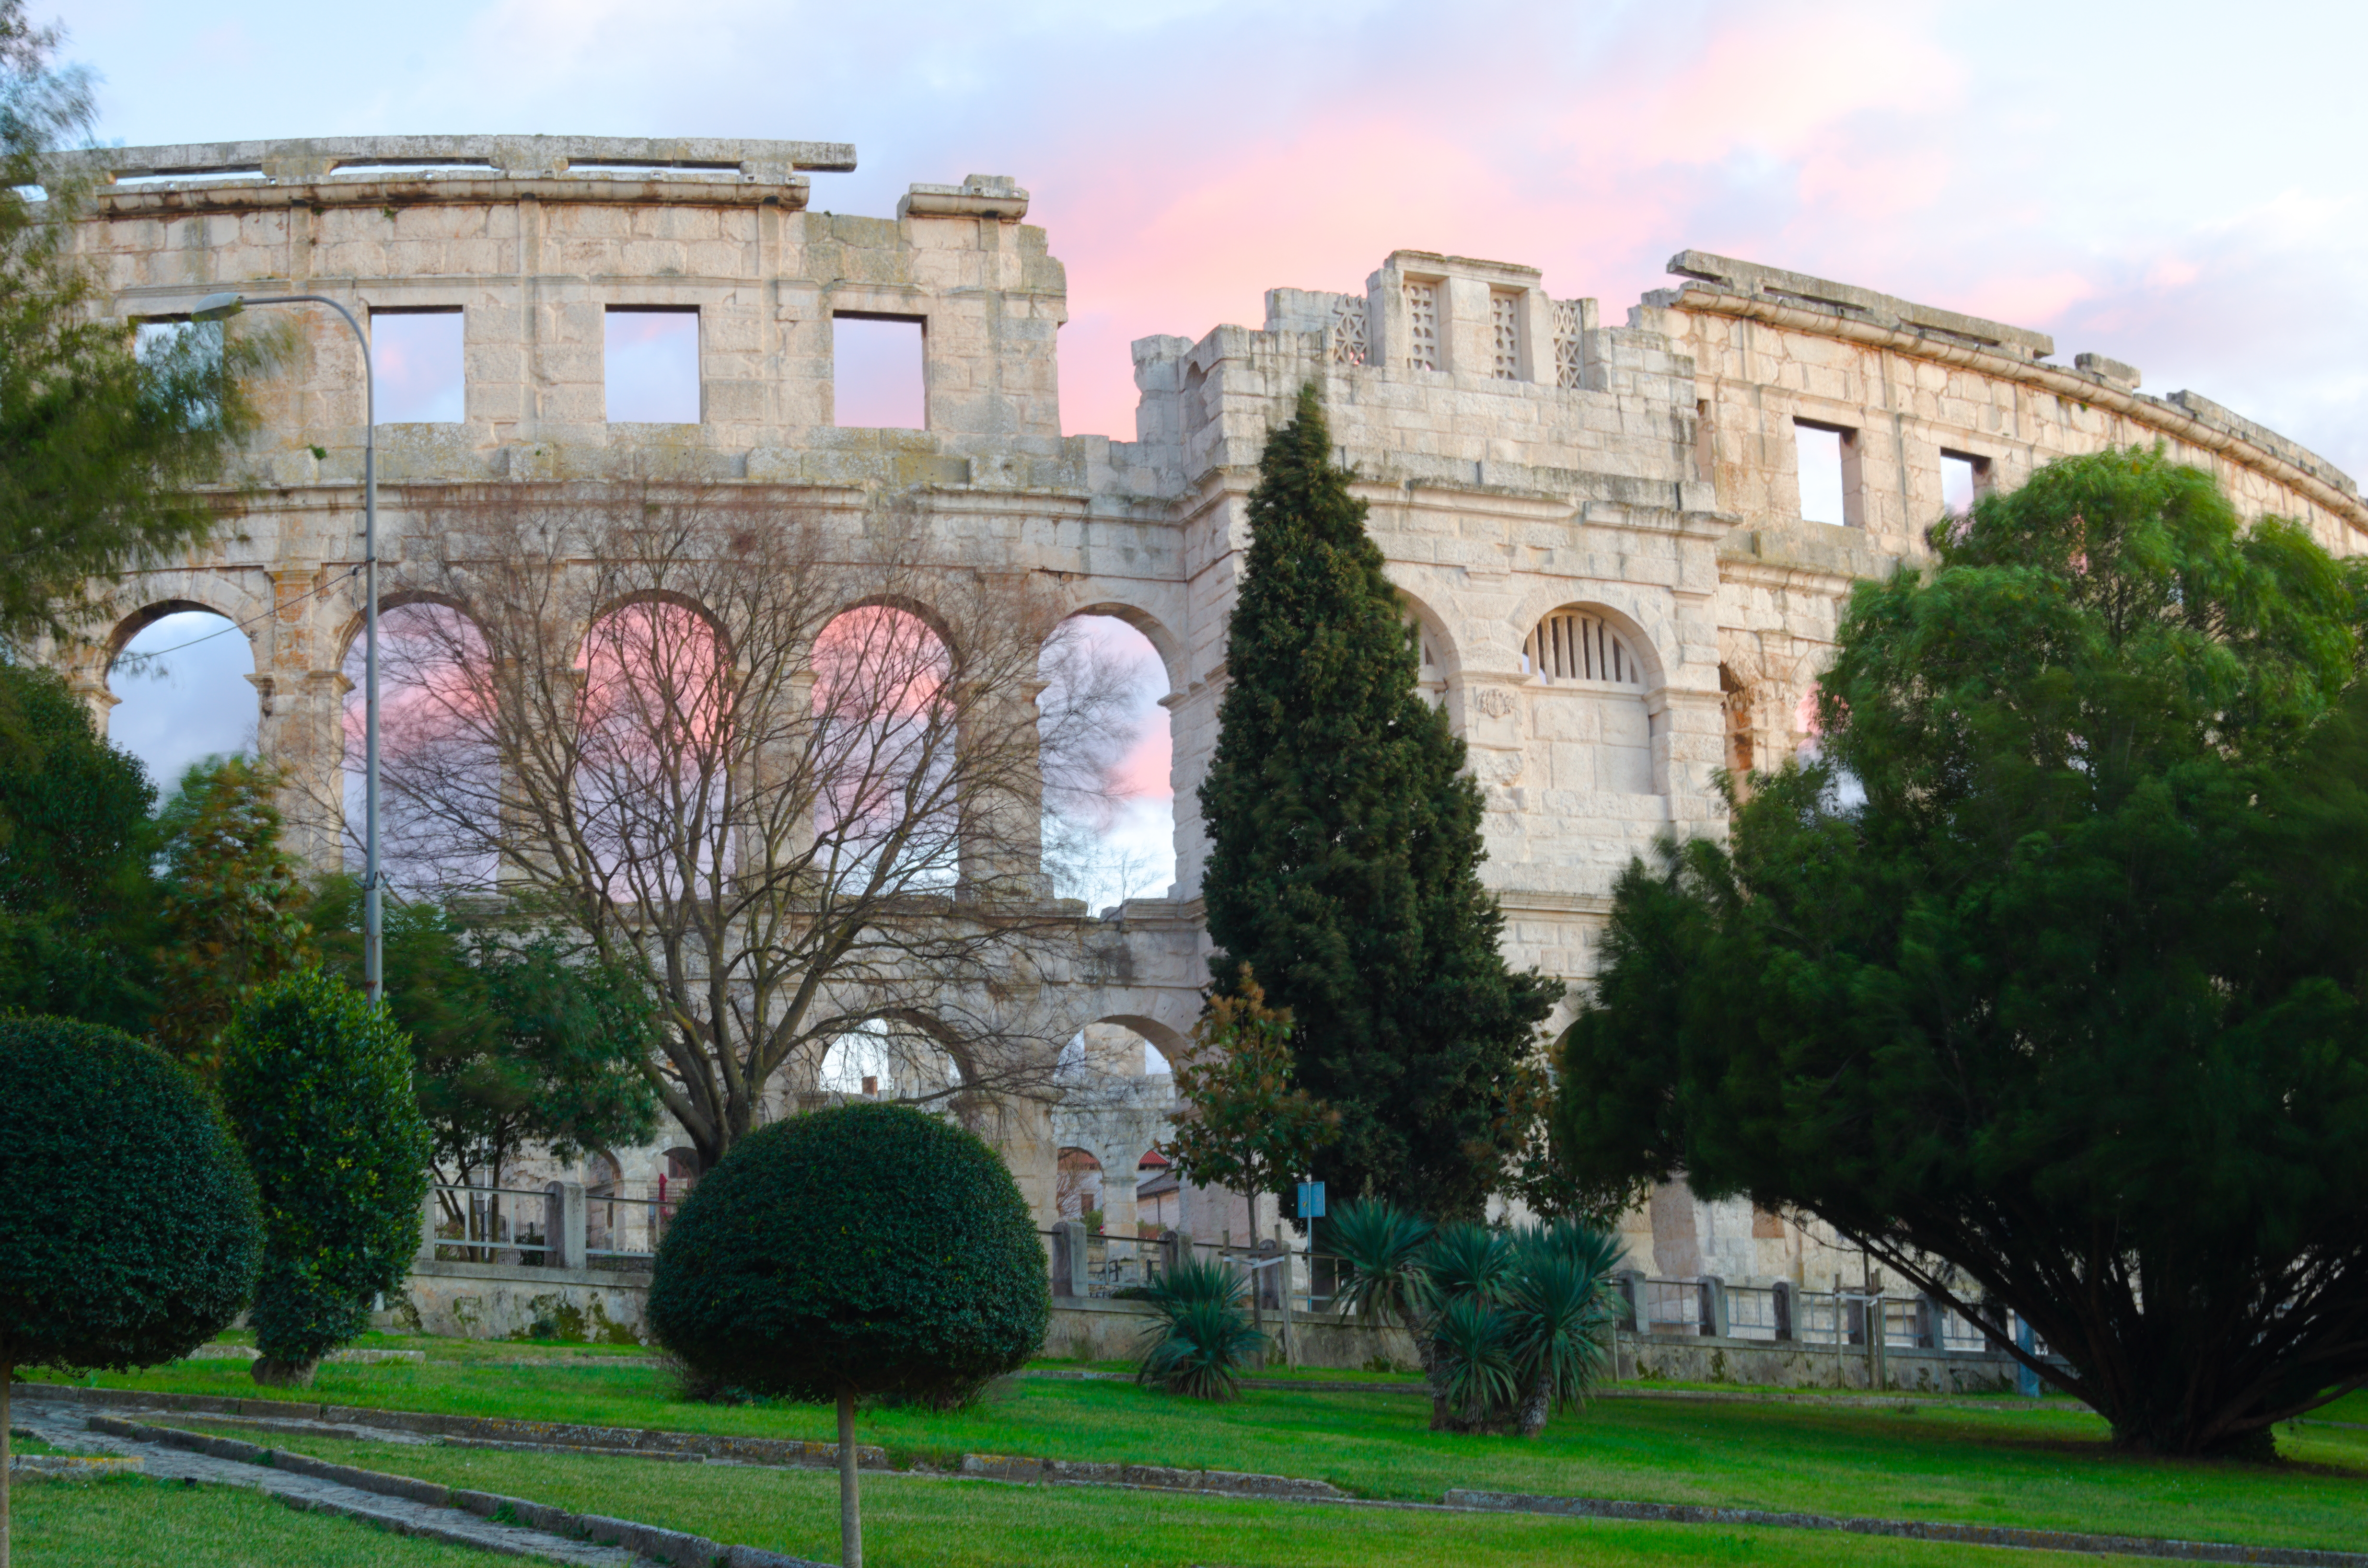 Pula, the Roman Amphtheater